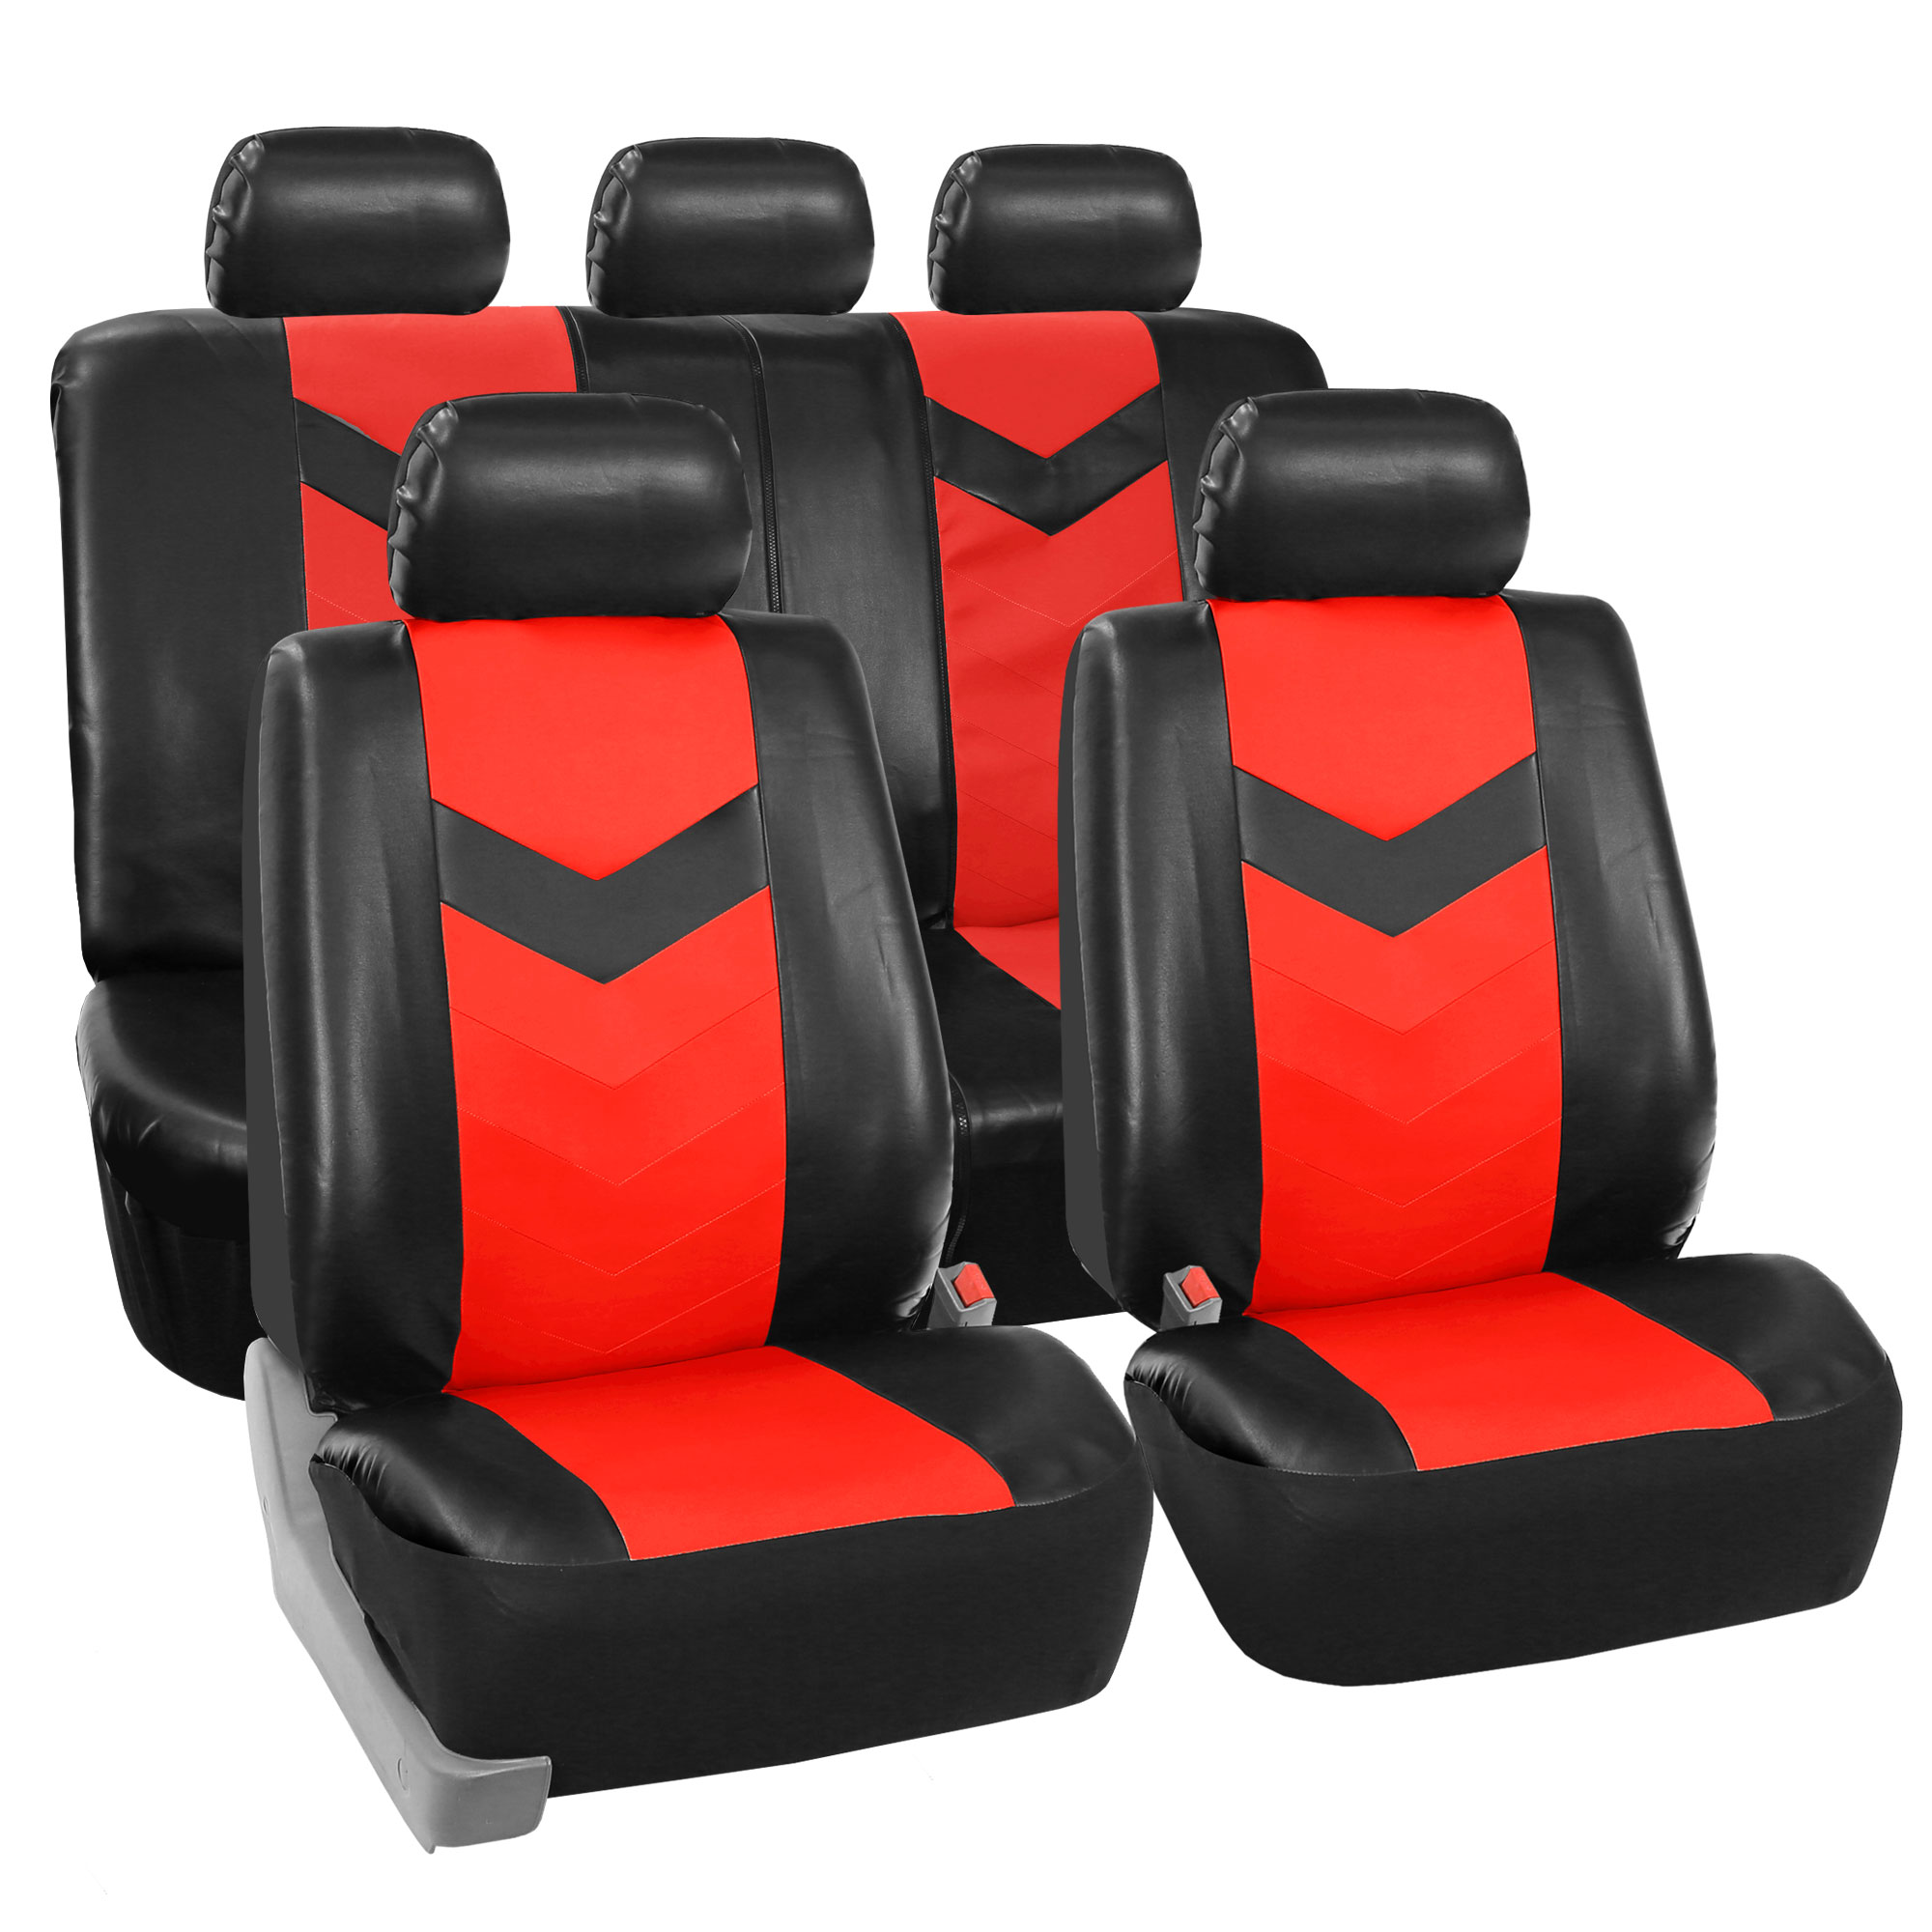 synthetic leather car seat covers w carpet floor mats ebay. Black Bedroom Furniture Sets. Home Design Ideas